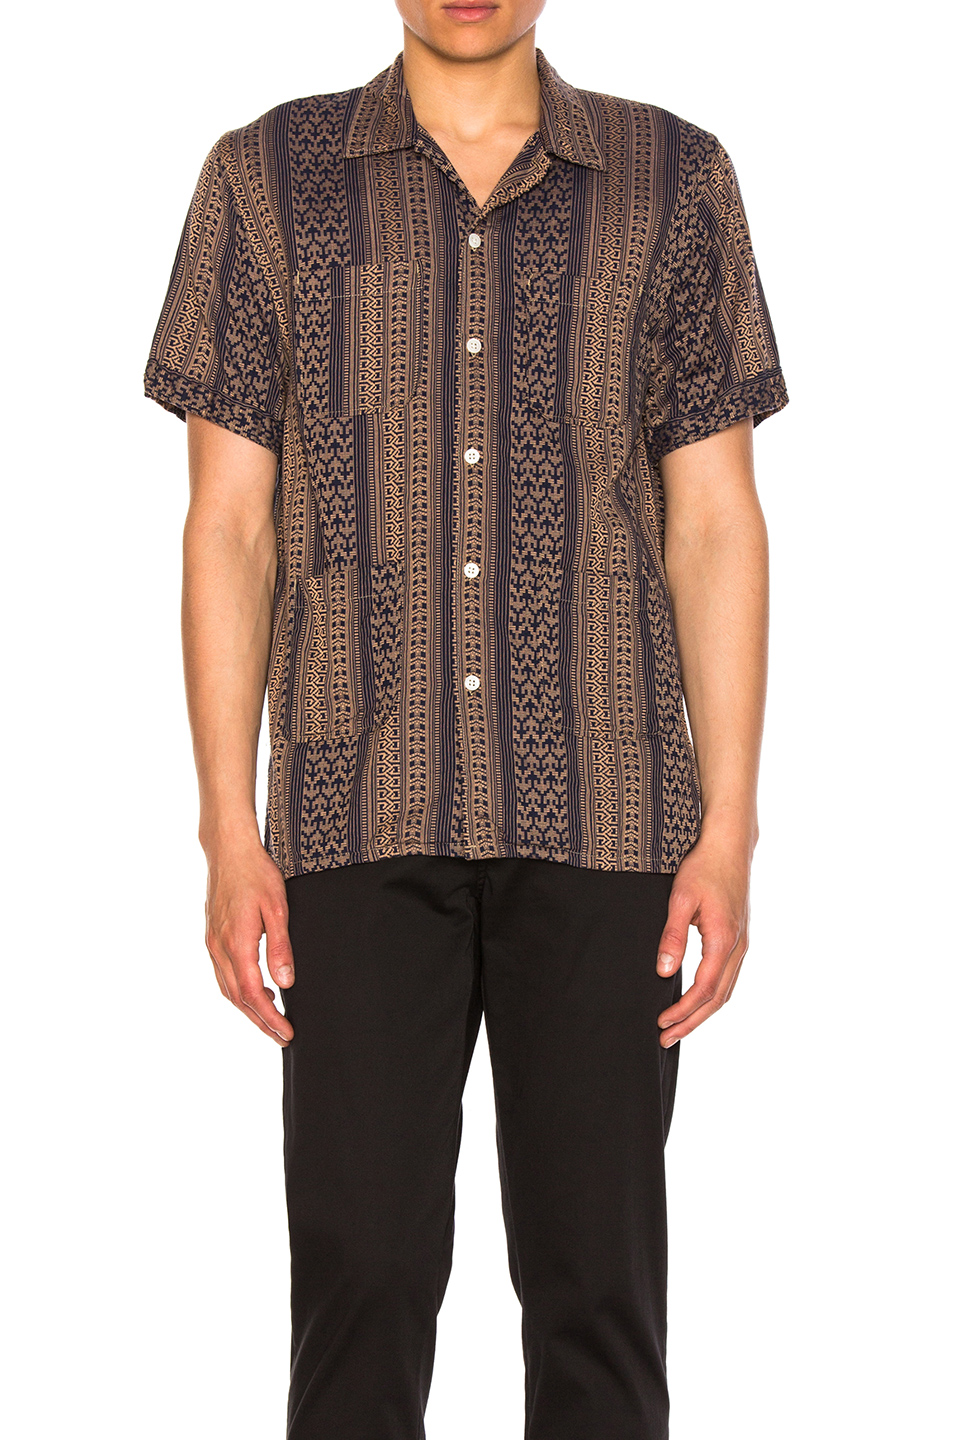 Engineered Garments Multi Stripe Jacquard Camp Shirt in Blue,Brown,Abstract